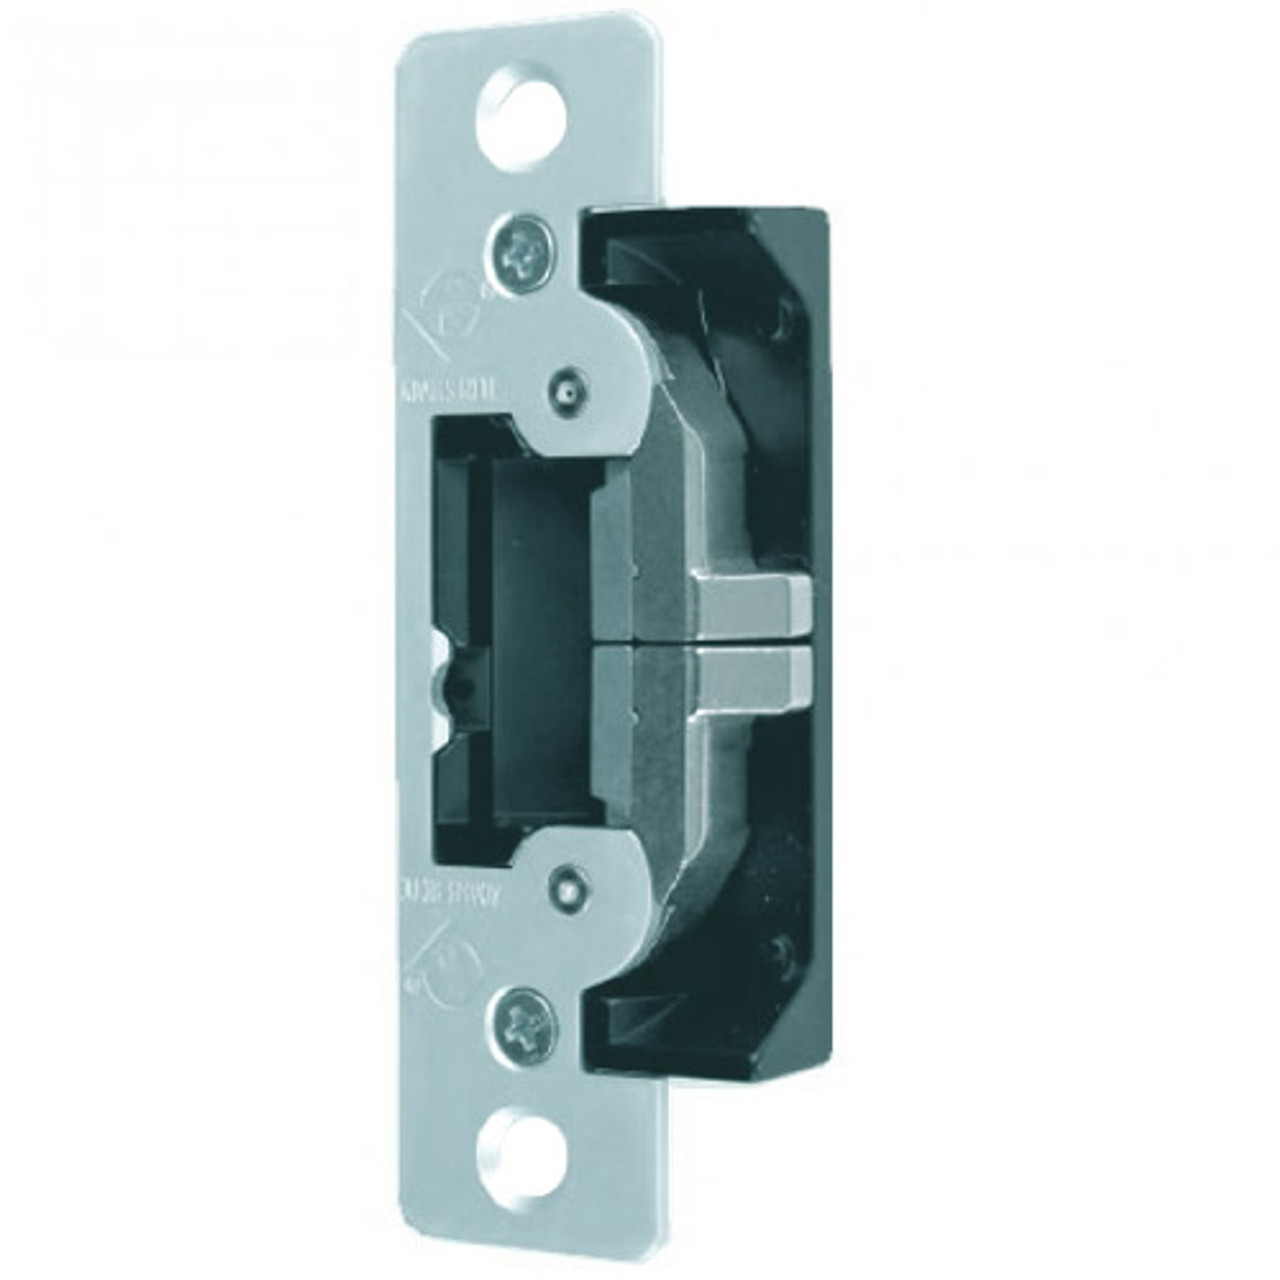 7400-629 Adams Rite UltraLine Electric Strike for Radius Jambs in Bright Stainless Finish